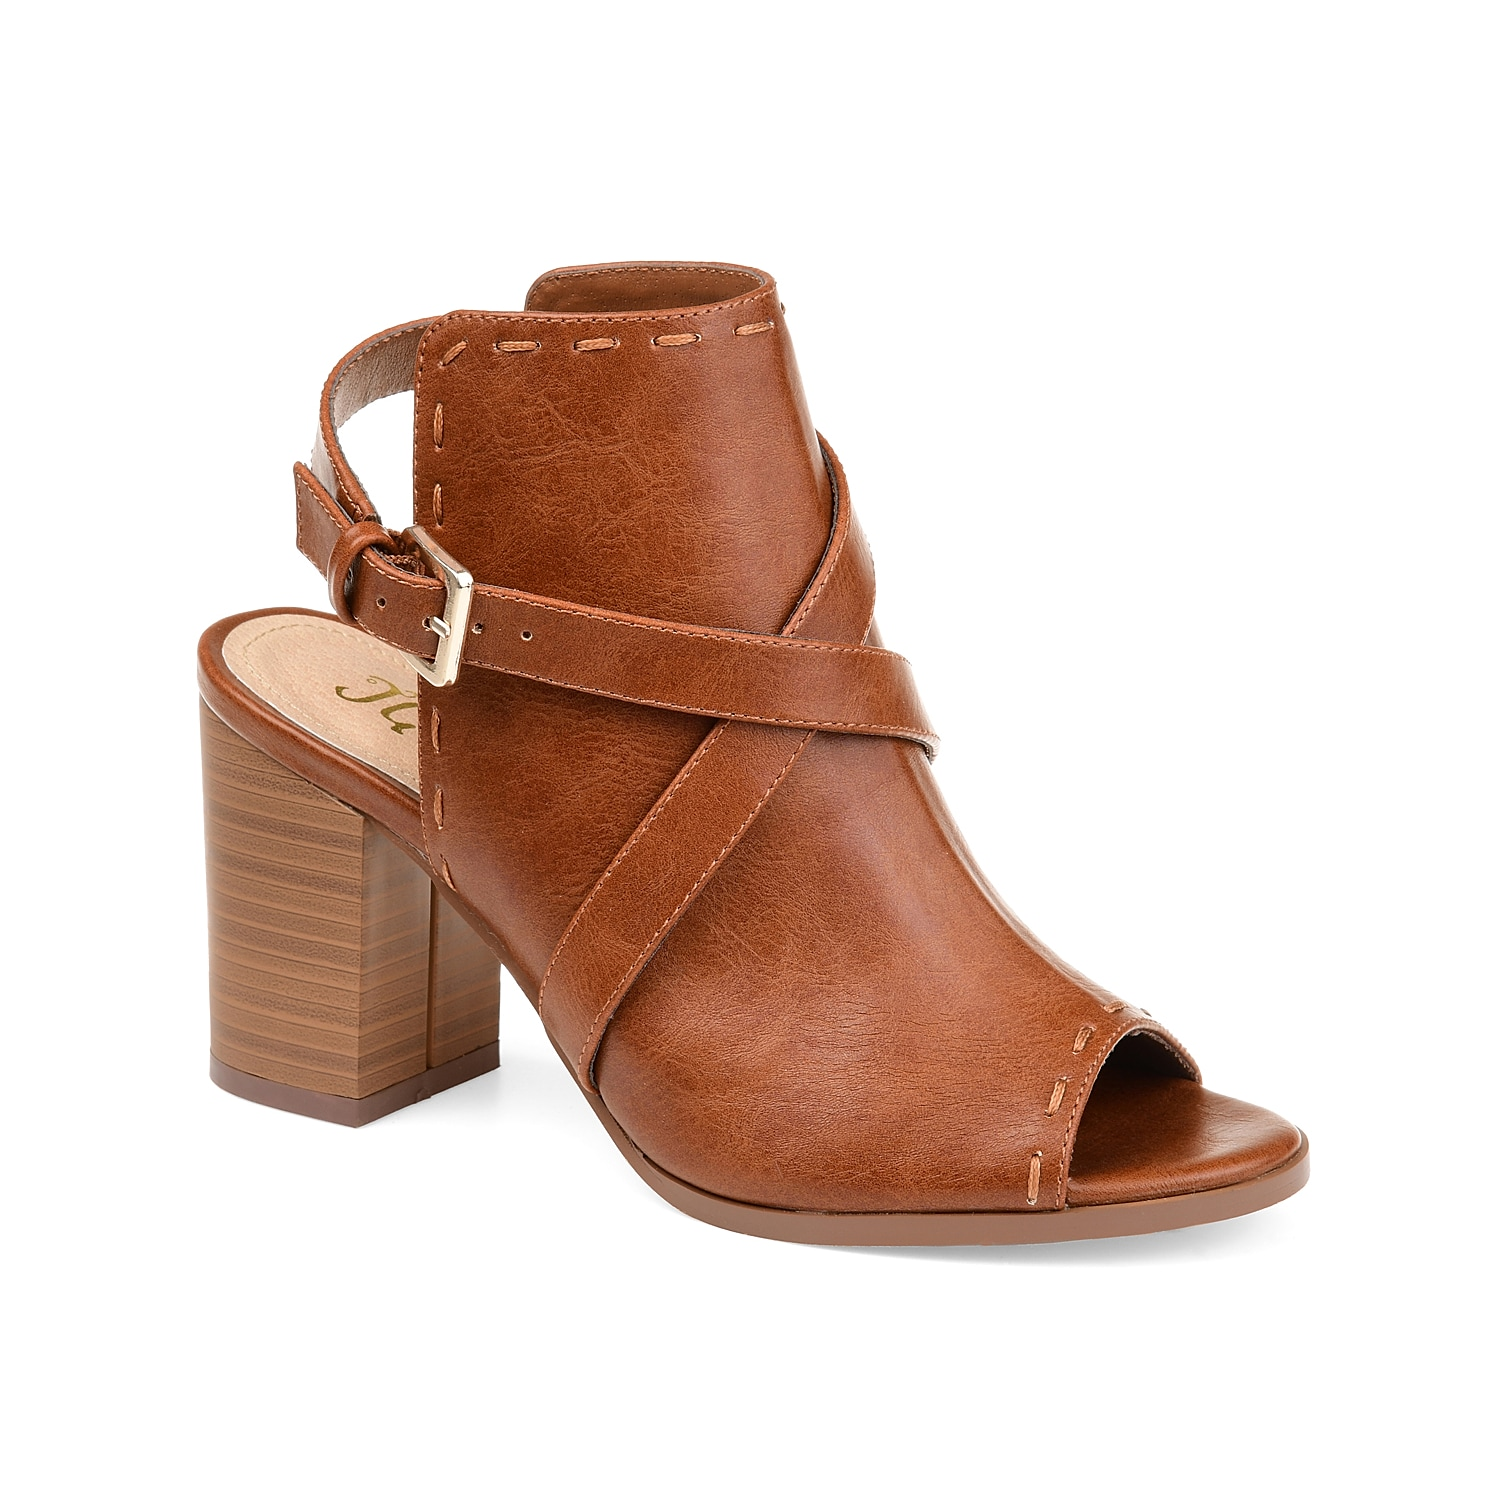 Step up your fashion game with the Theda shootie from Journee Collection. Sporting a neat open-back profile, this open-toe shootie features impressive crisscross buckled straps and subtle stitching accents.